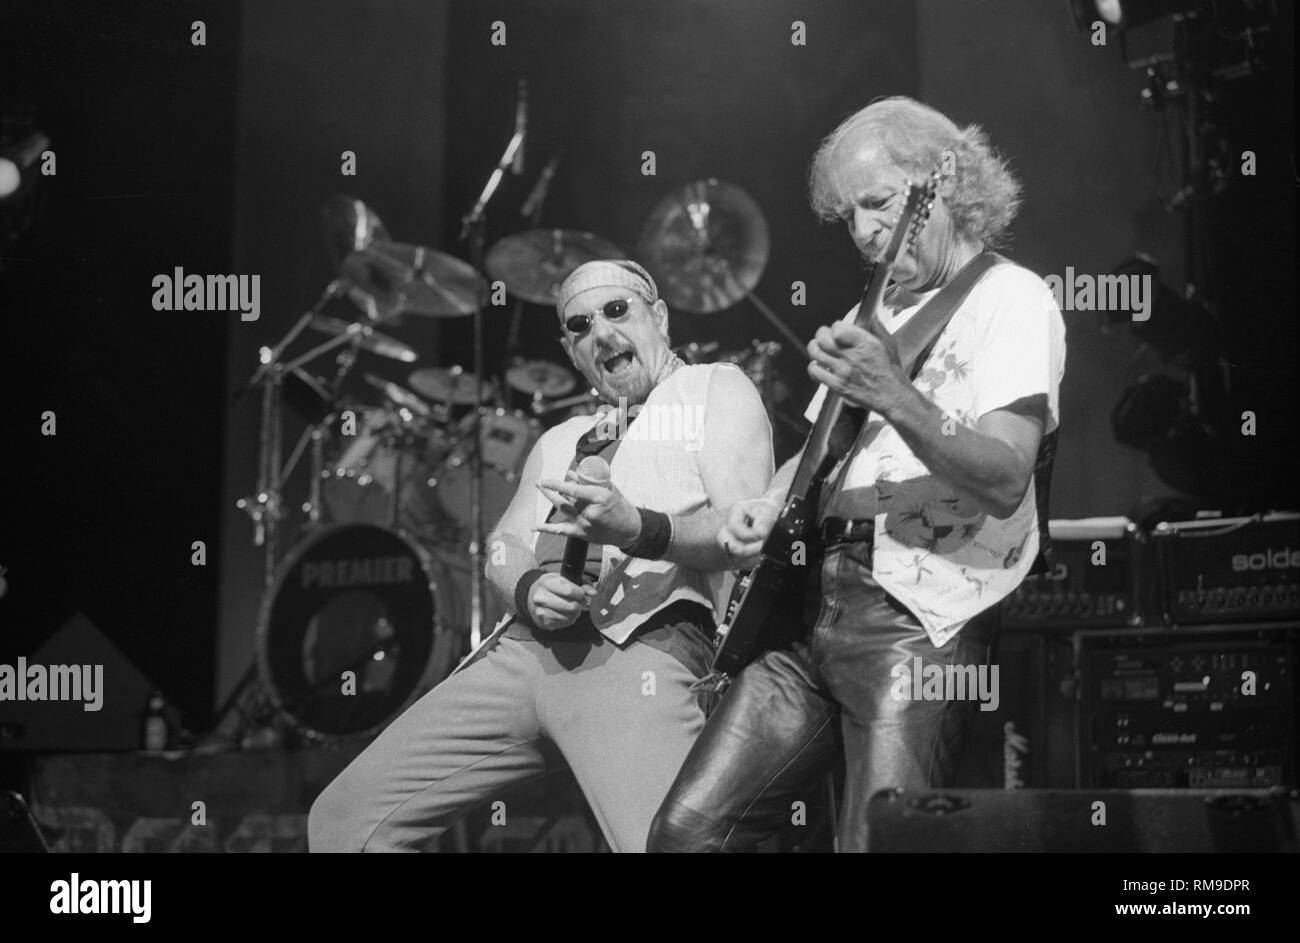 Ian Anderson and guitarist Martin Barre are shown performing on stage during a 'live' concert appearance with Jethro Tull. - Stock Image